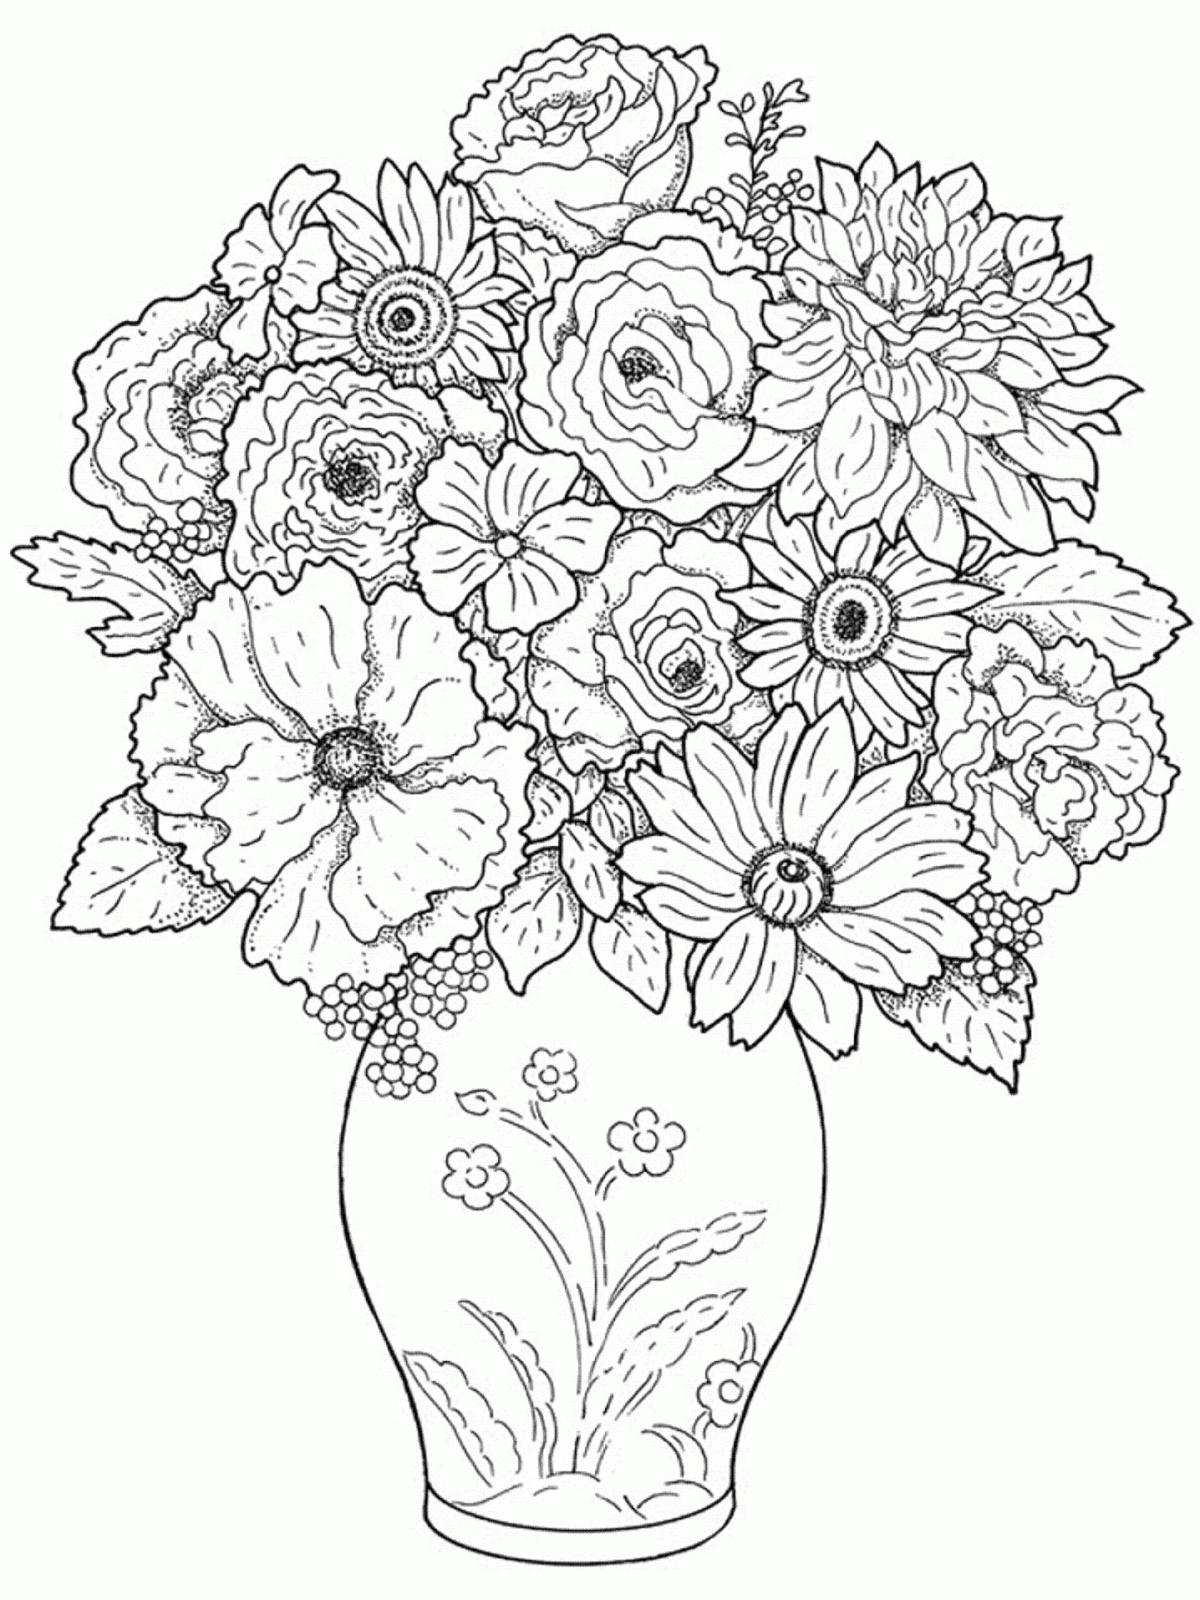 flowers in a pot drawing at getdrawings  free download